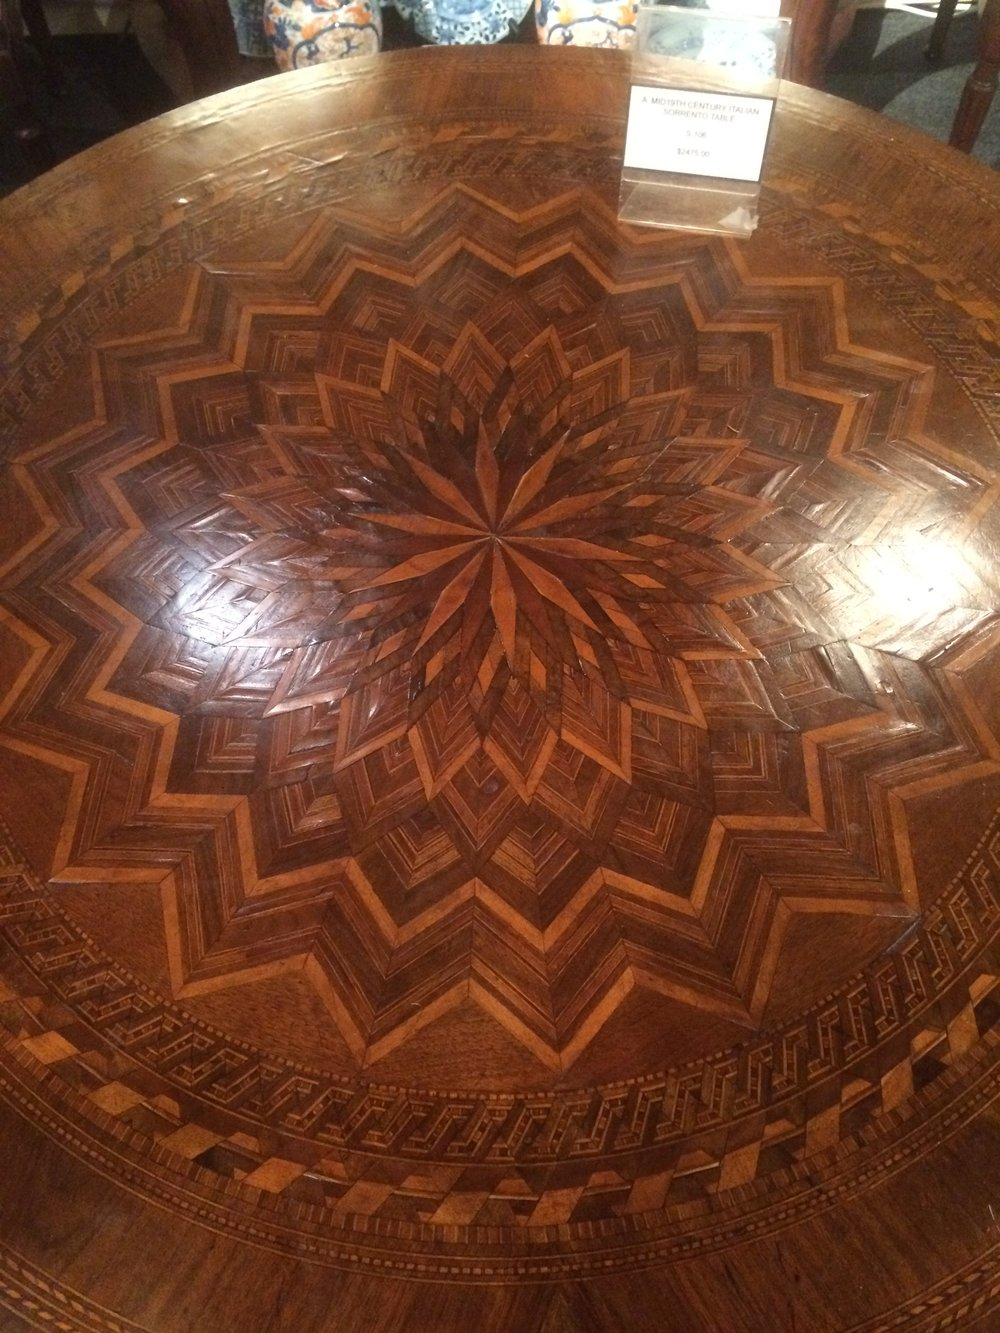 Look at the inlay detail on this center hall table!